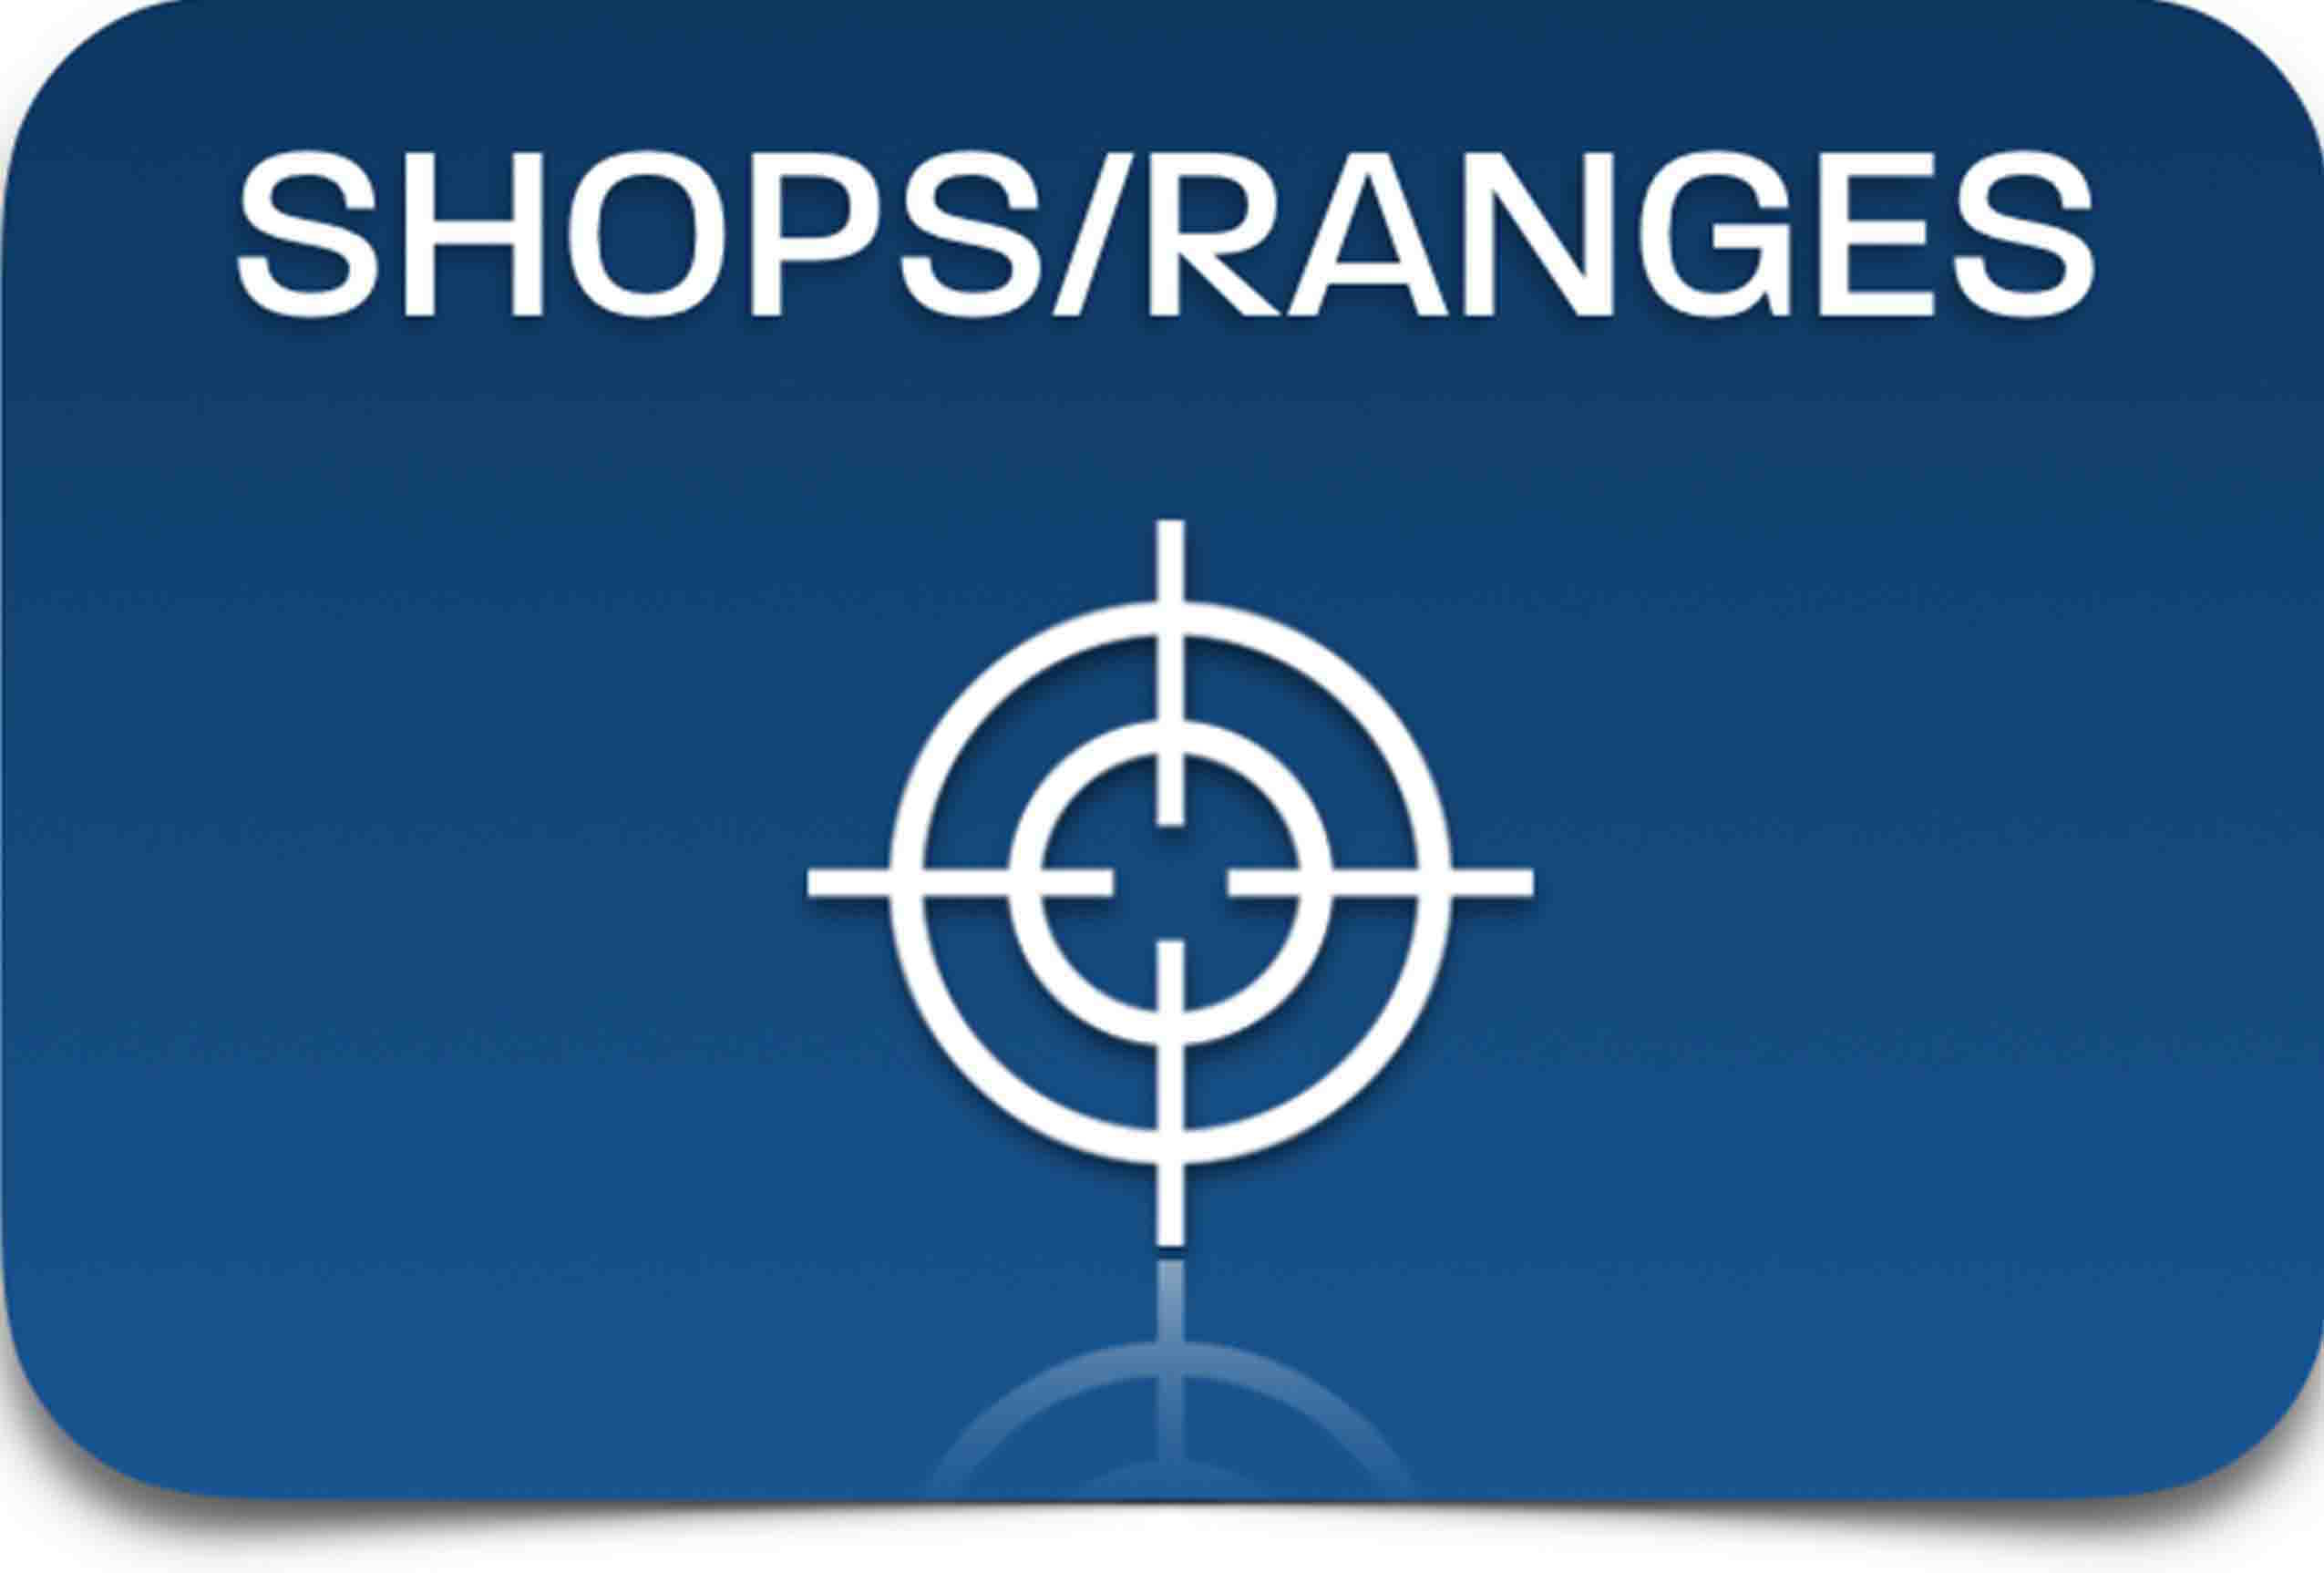 Shops_Ranges